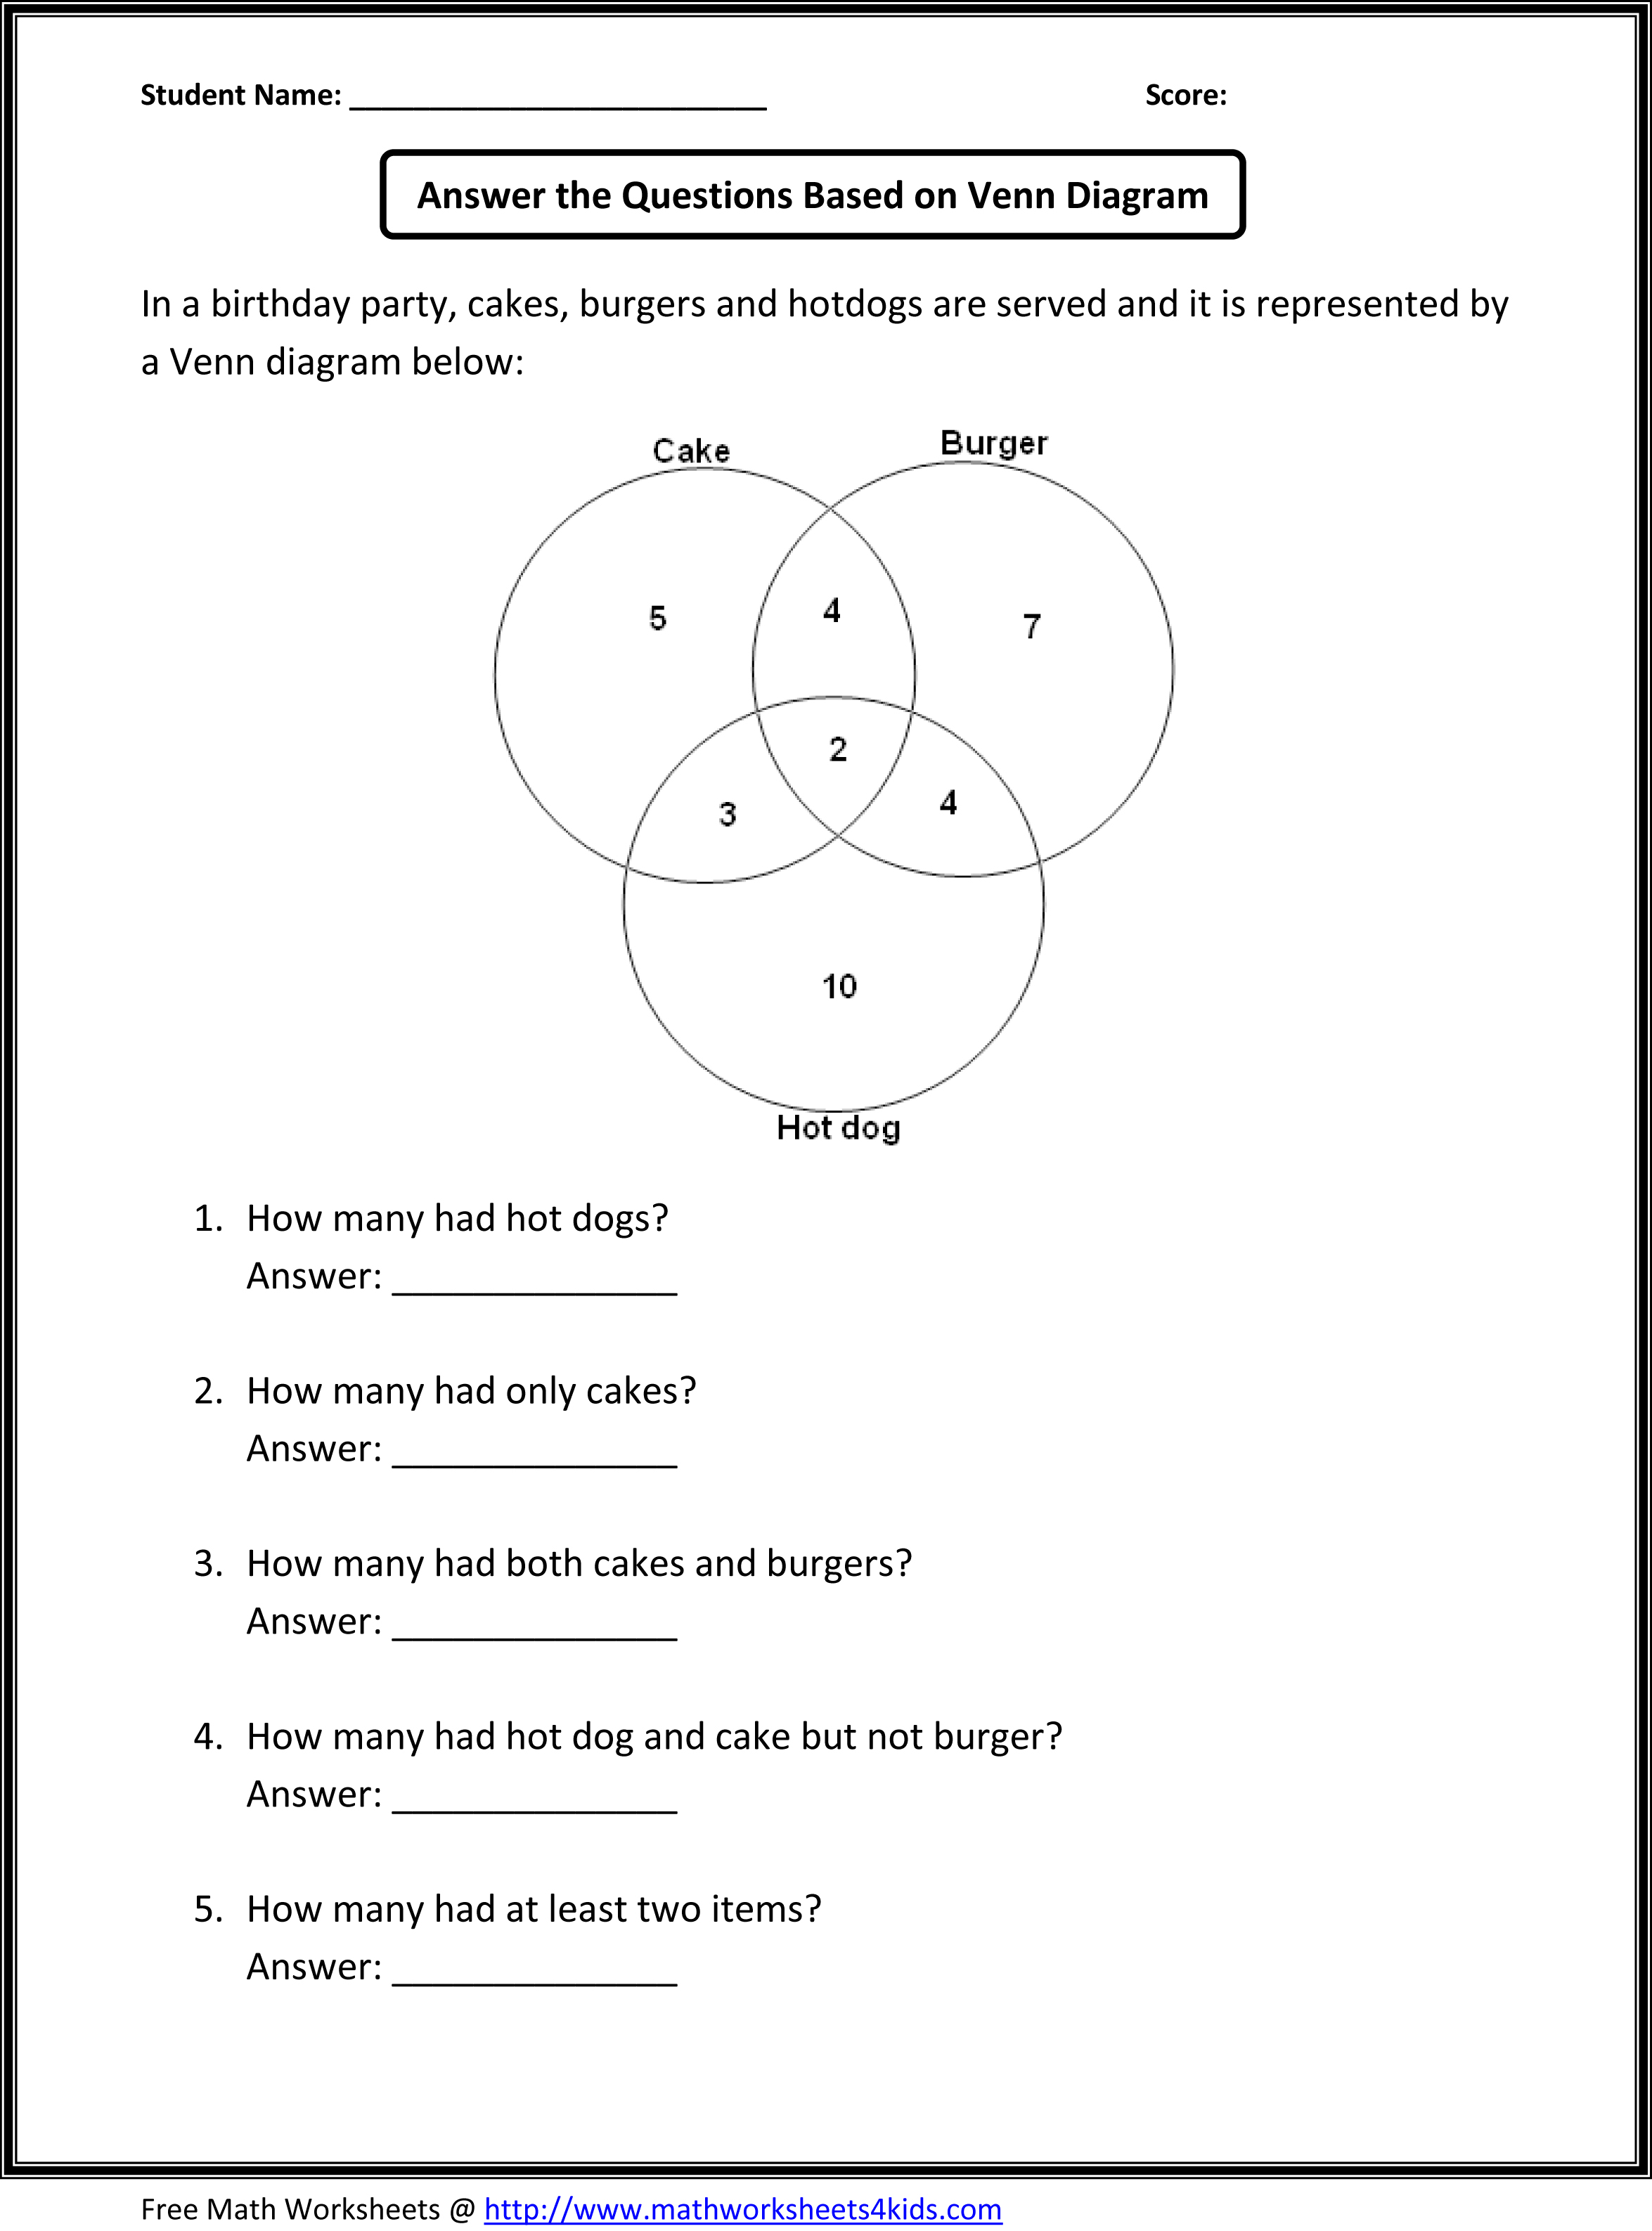 Venn Diagram Practice Worksheet